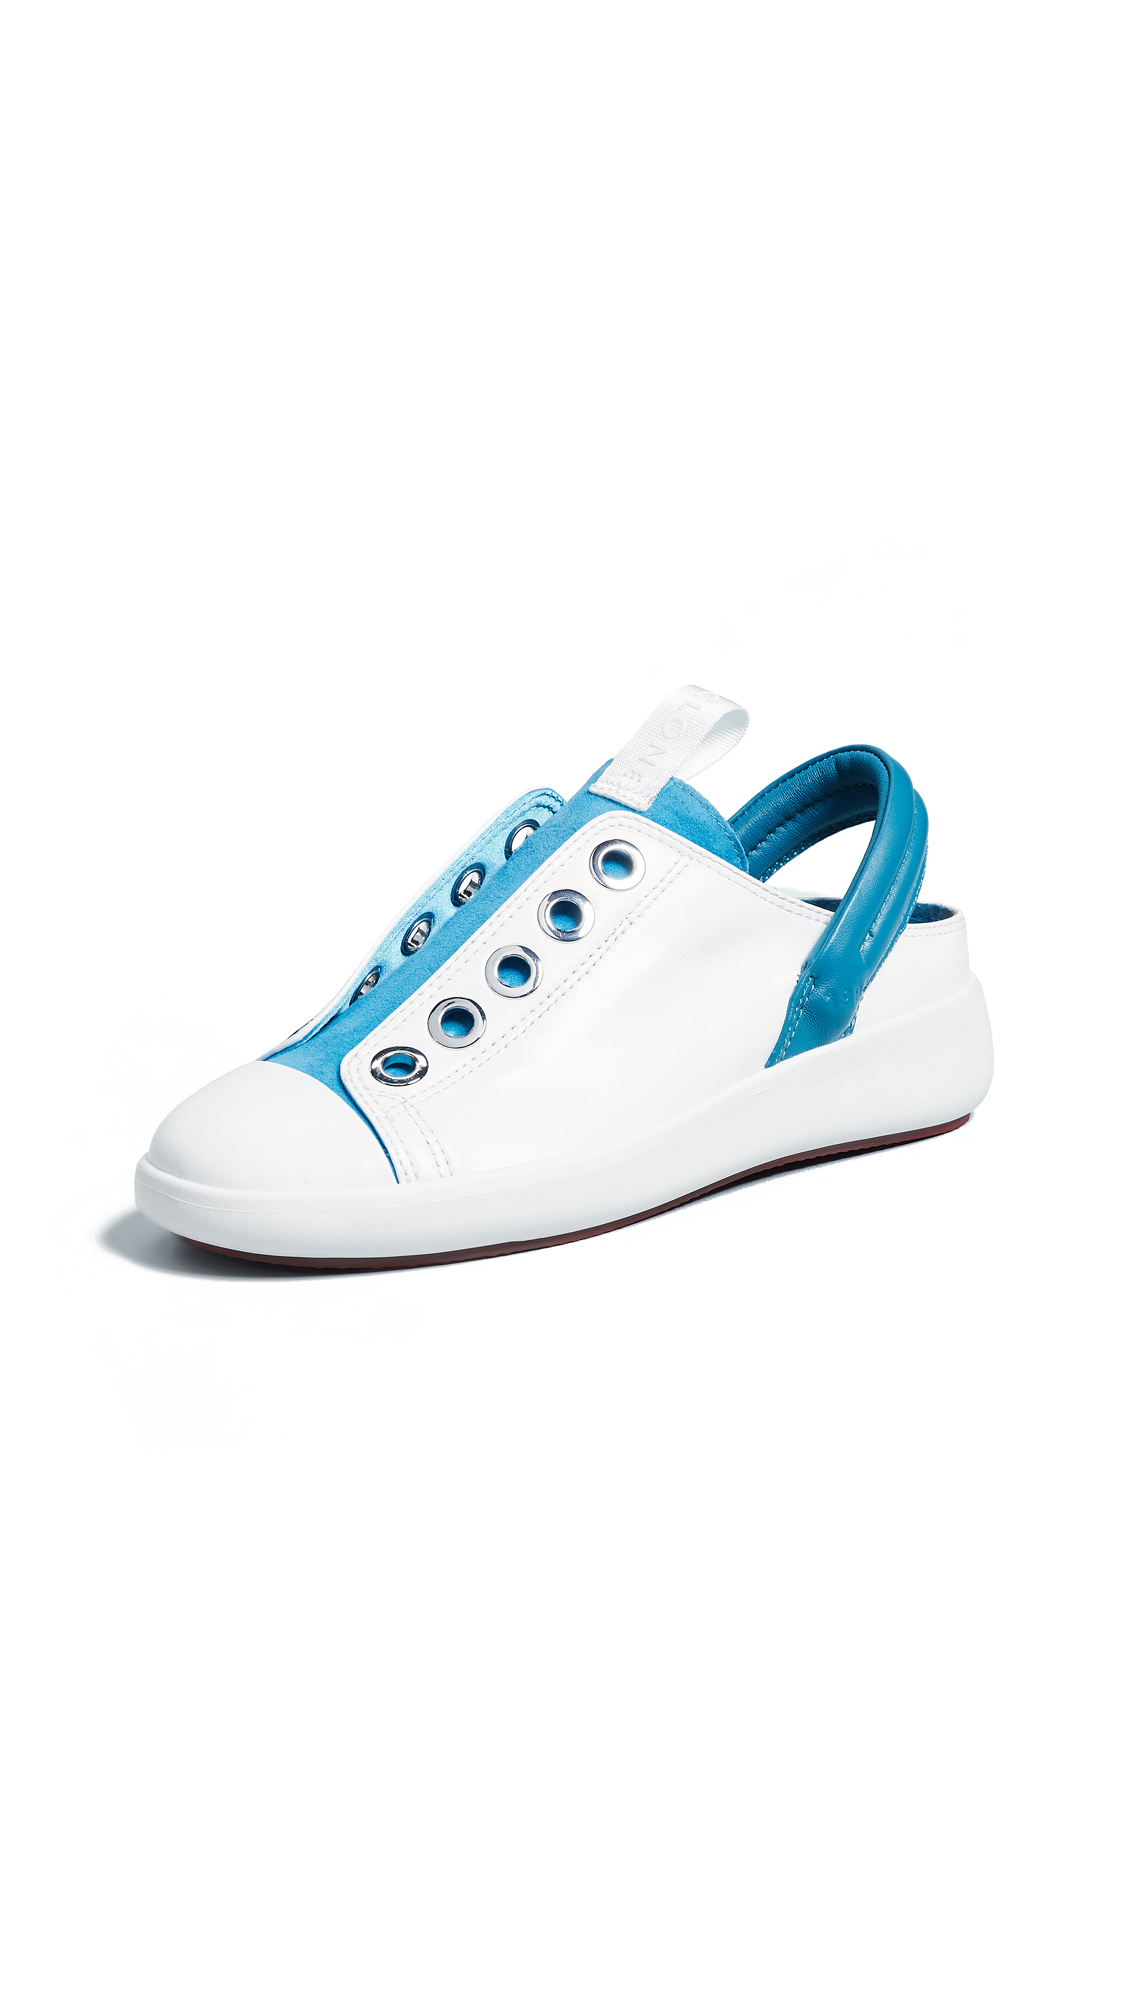 CLONE Moonstone Sneakers - White/Light Blue